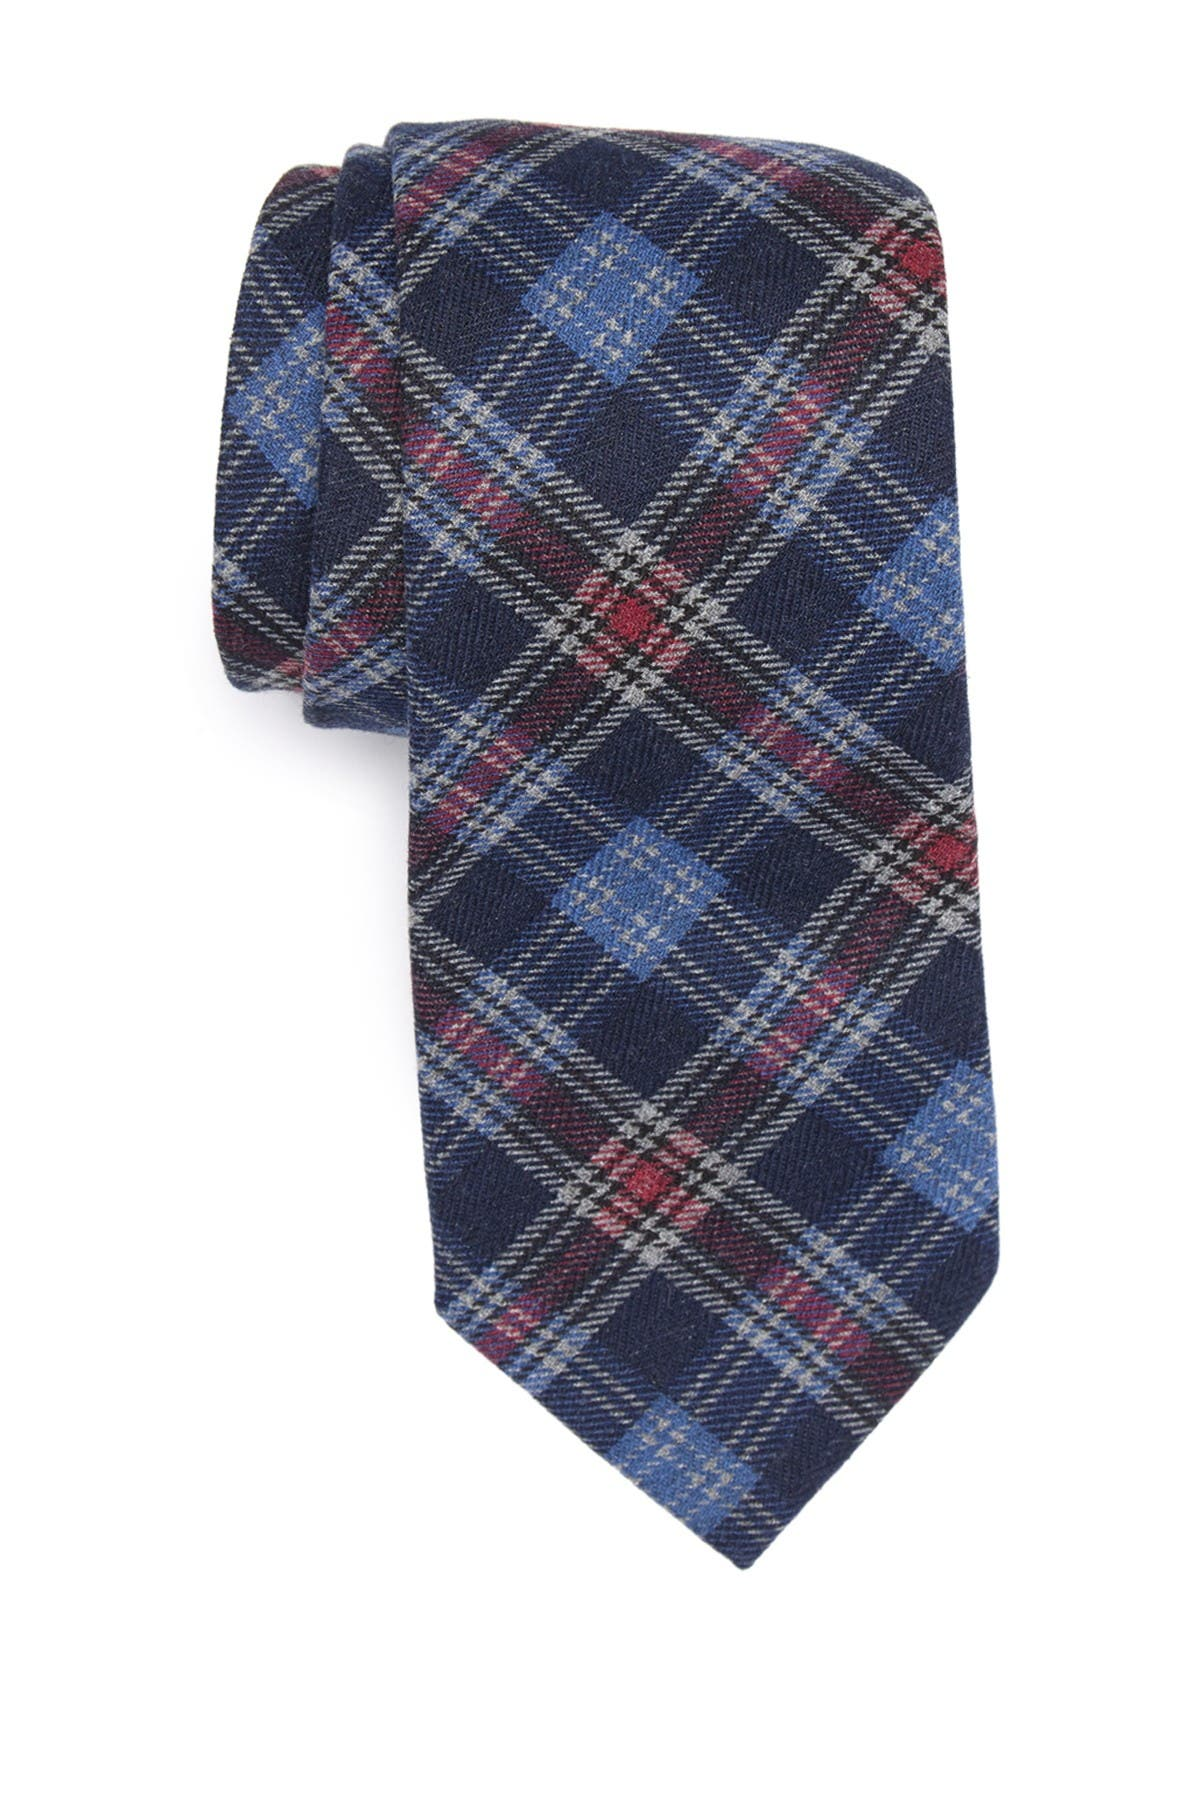 Image of Bespoke Whitby Plaid Tie